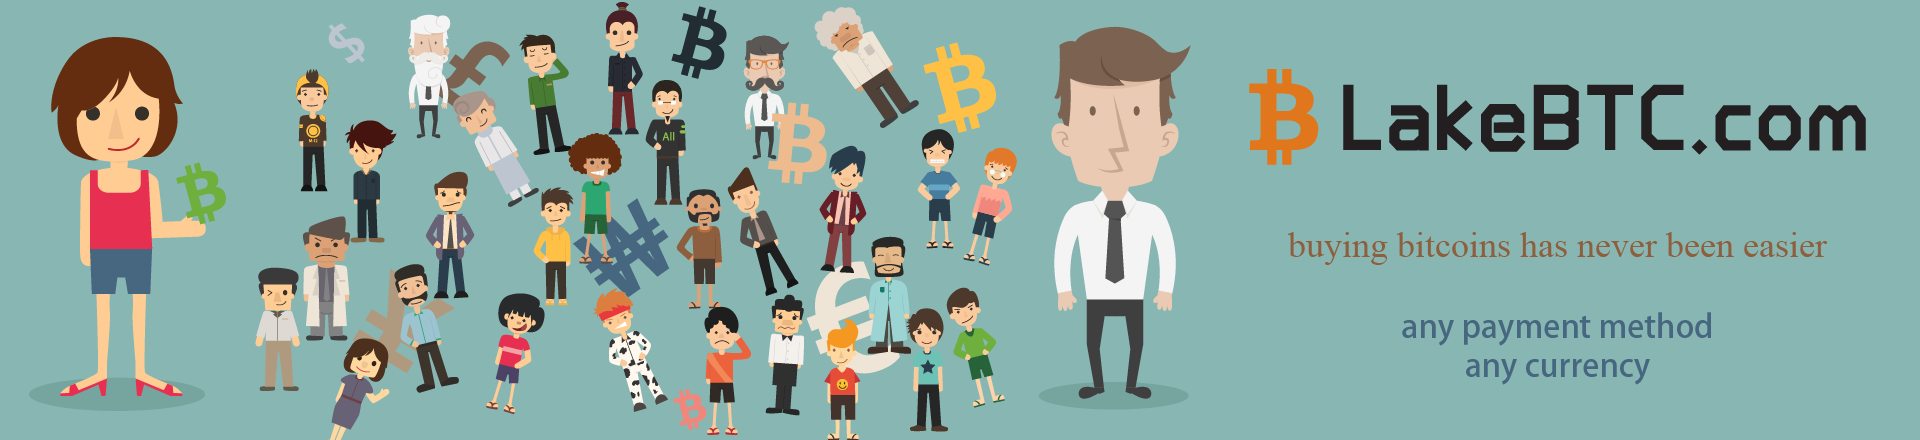 LakeBTC P2P Bitcoin Exchange Paxful Bitcoin Marketplace Changelly Cryptocurrency Exchange Platform Trezor Ledger Model T Tokens Net Platform Binance Crypto Currency Exchange Local Bitcoins servicetrading Buybit BTC Exchange Trezor One Metallic Bitcoin Litecoin Dash XRP and more. Explore the thousands of crypto Trezor Model T currencies in our crypto database ETH ETHEREUM BYTCION COIN Crypto currency personal service